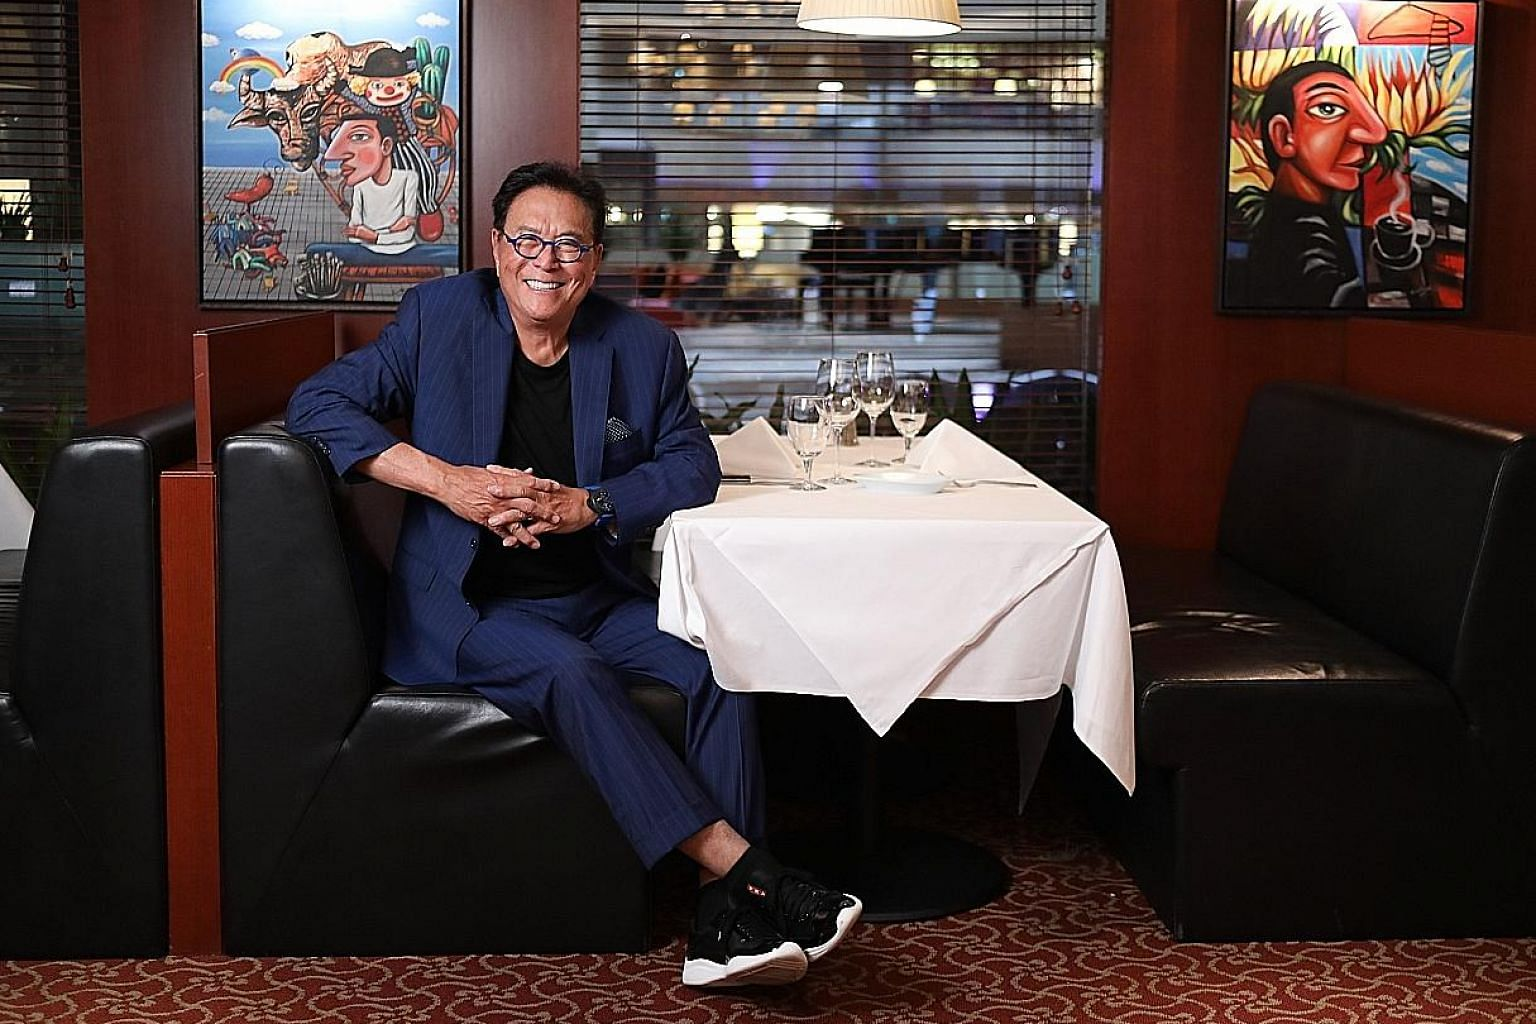 Mr Robert Kiyosaki says there is no magic formula in making money. His book Rich Dad Poor Dad, published in 1997, has sold more than 32 million copies since and spawned a business which includes seminars. Besides the Rich Dad business, he and his wif